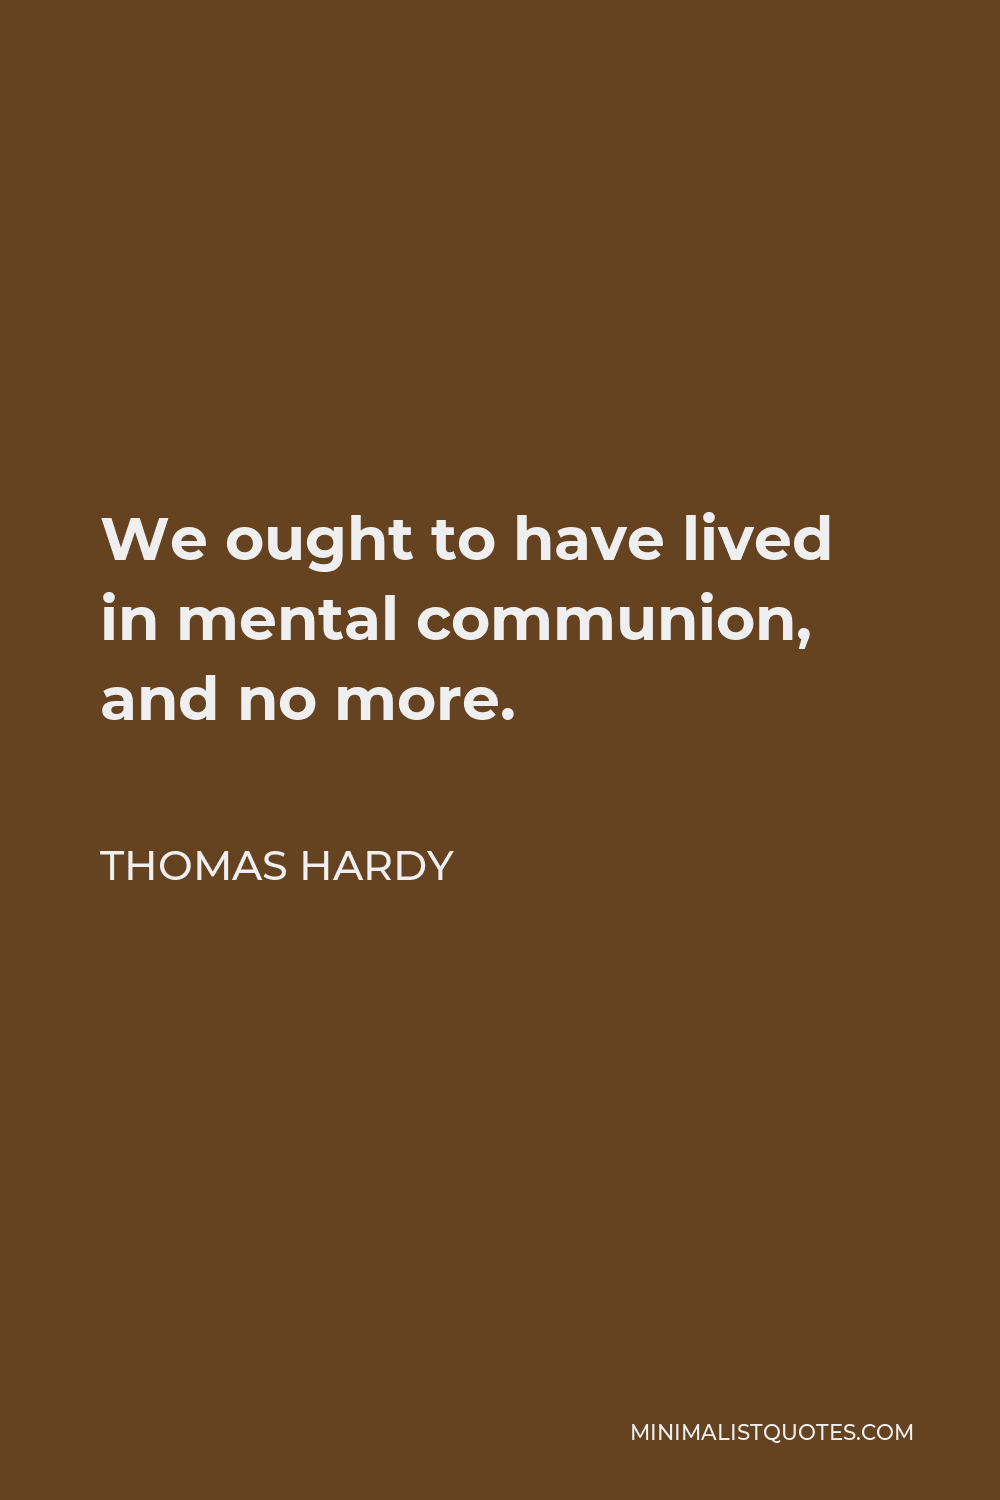 Thomas Hardy Quote - We ought to have lived in mental communion, and no more.